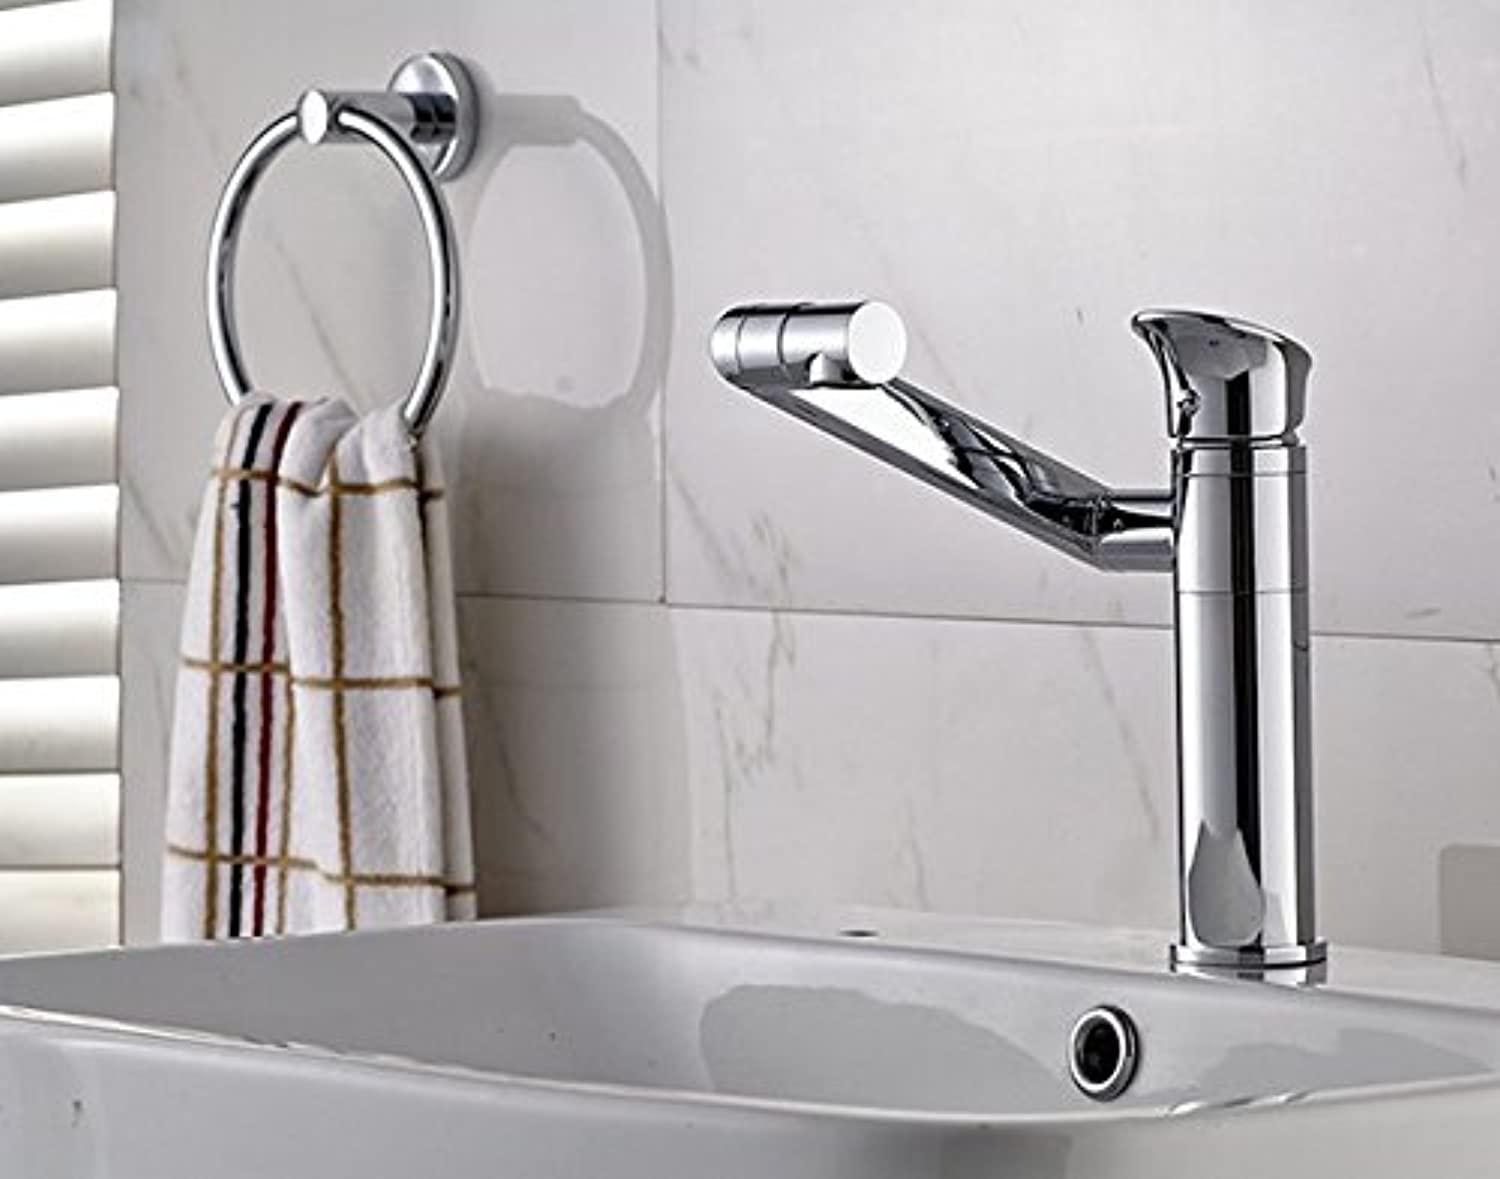 Mangeoo Faucet All Copper Faucet Basin Faucet Hot And Cold Basin Faucet 360 Degree Swivel Faucet